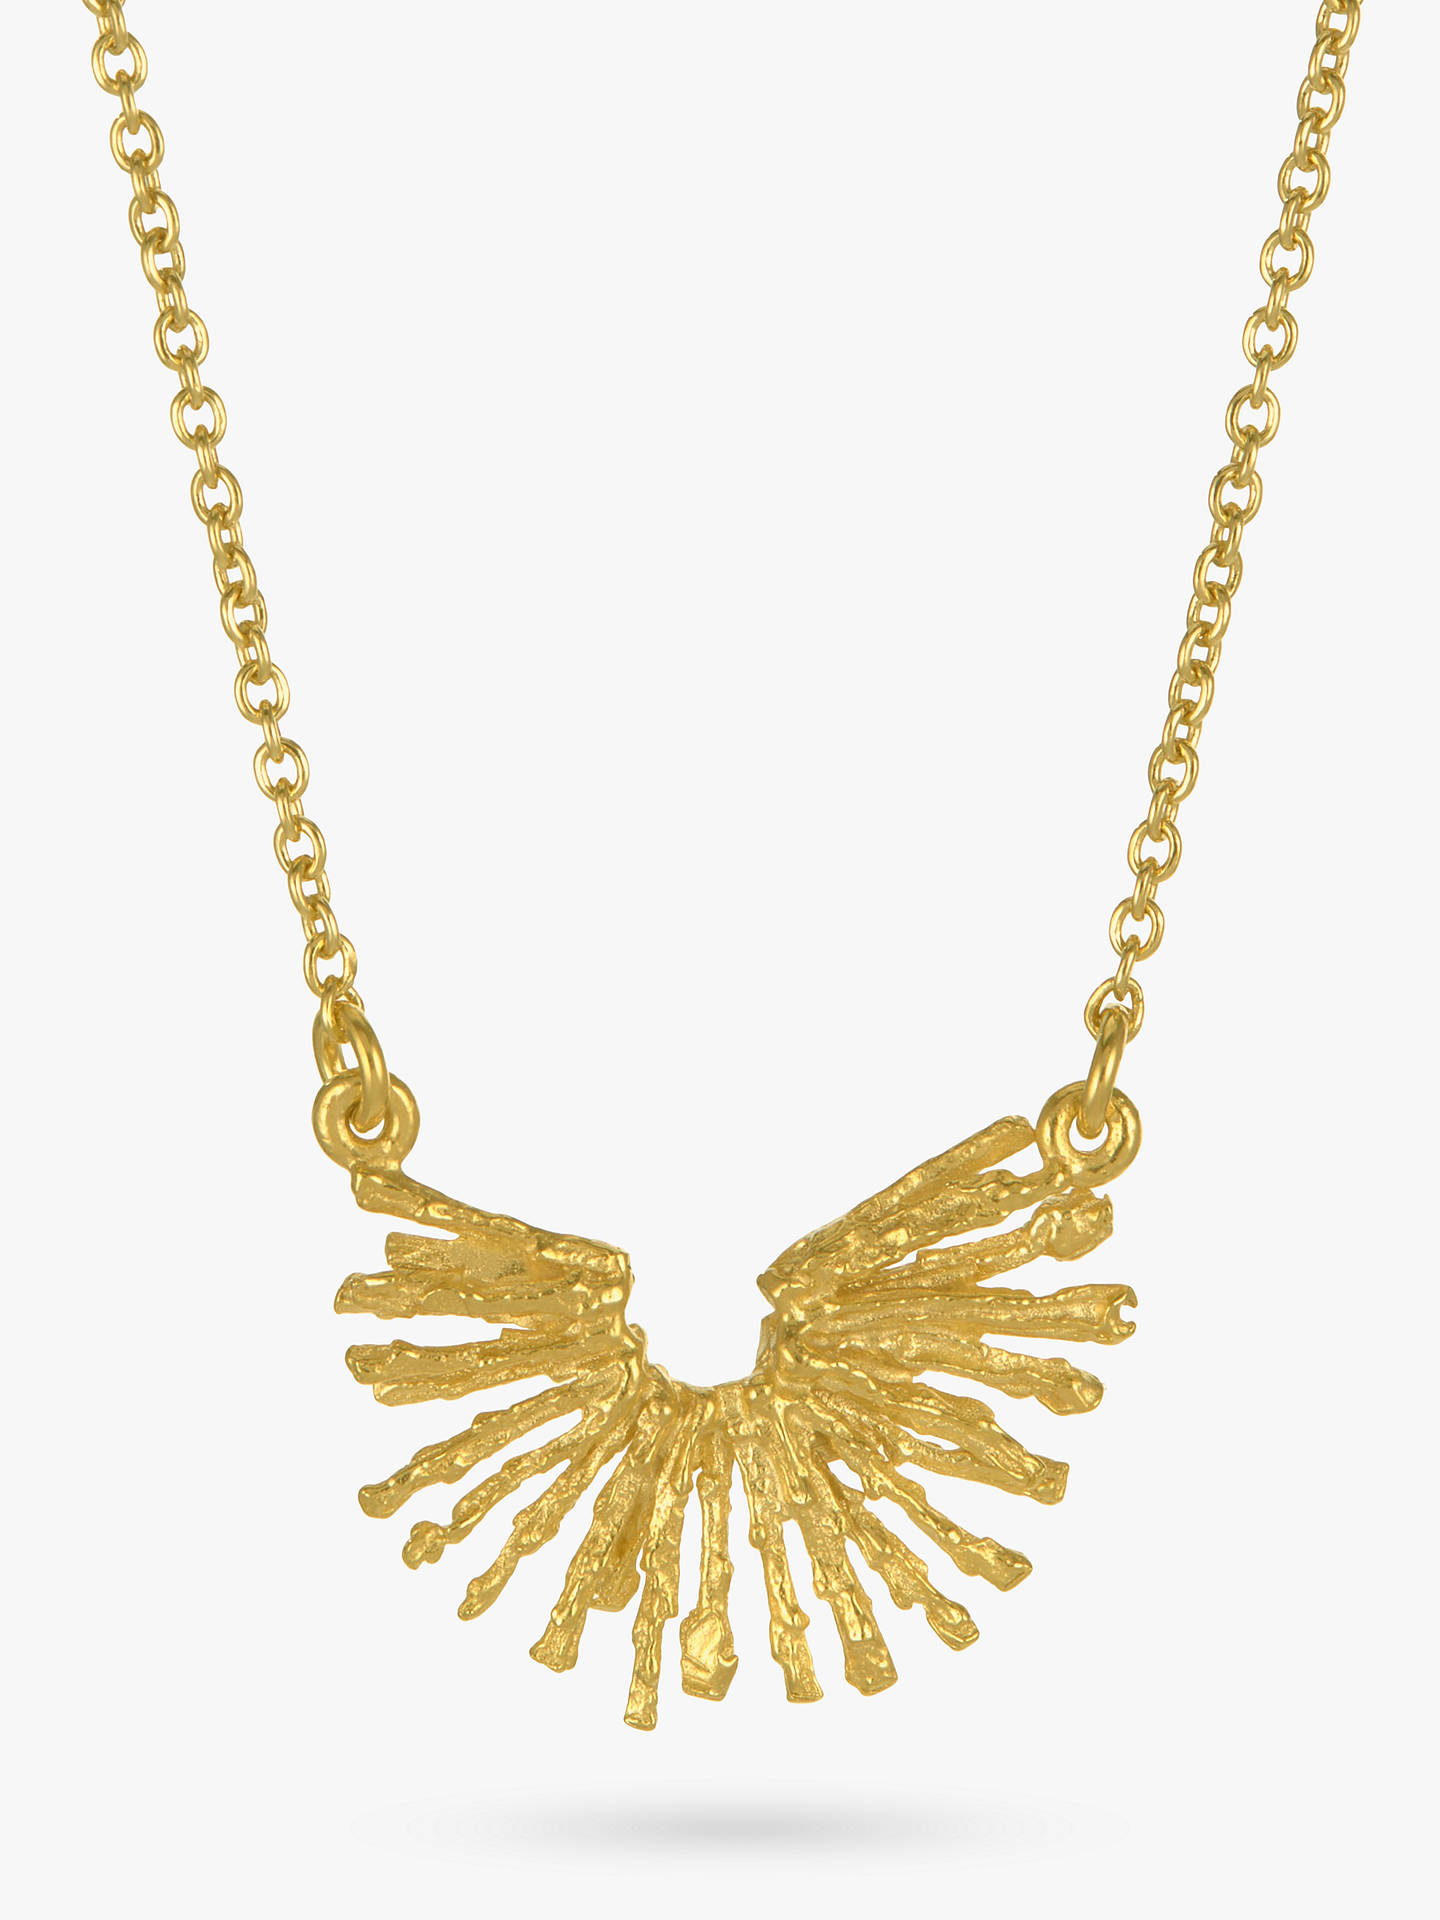 BuyAlex Monroe 22ct Gold Plated Nest Structure Necklace Online at johnlewis.com